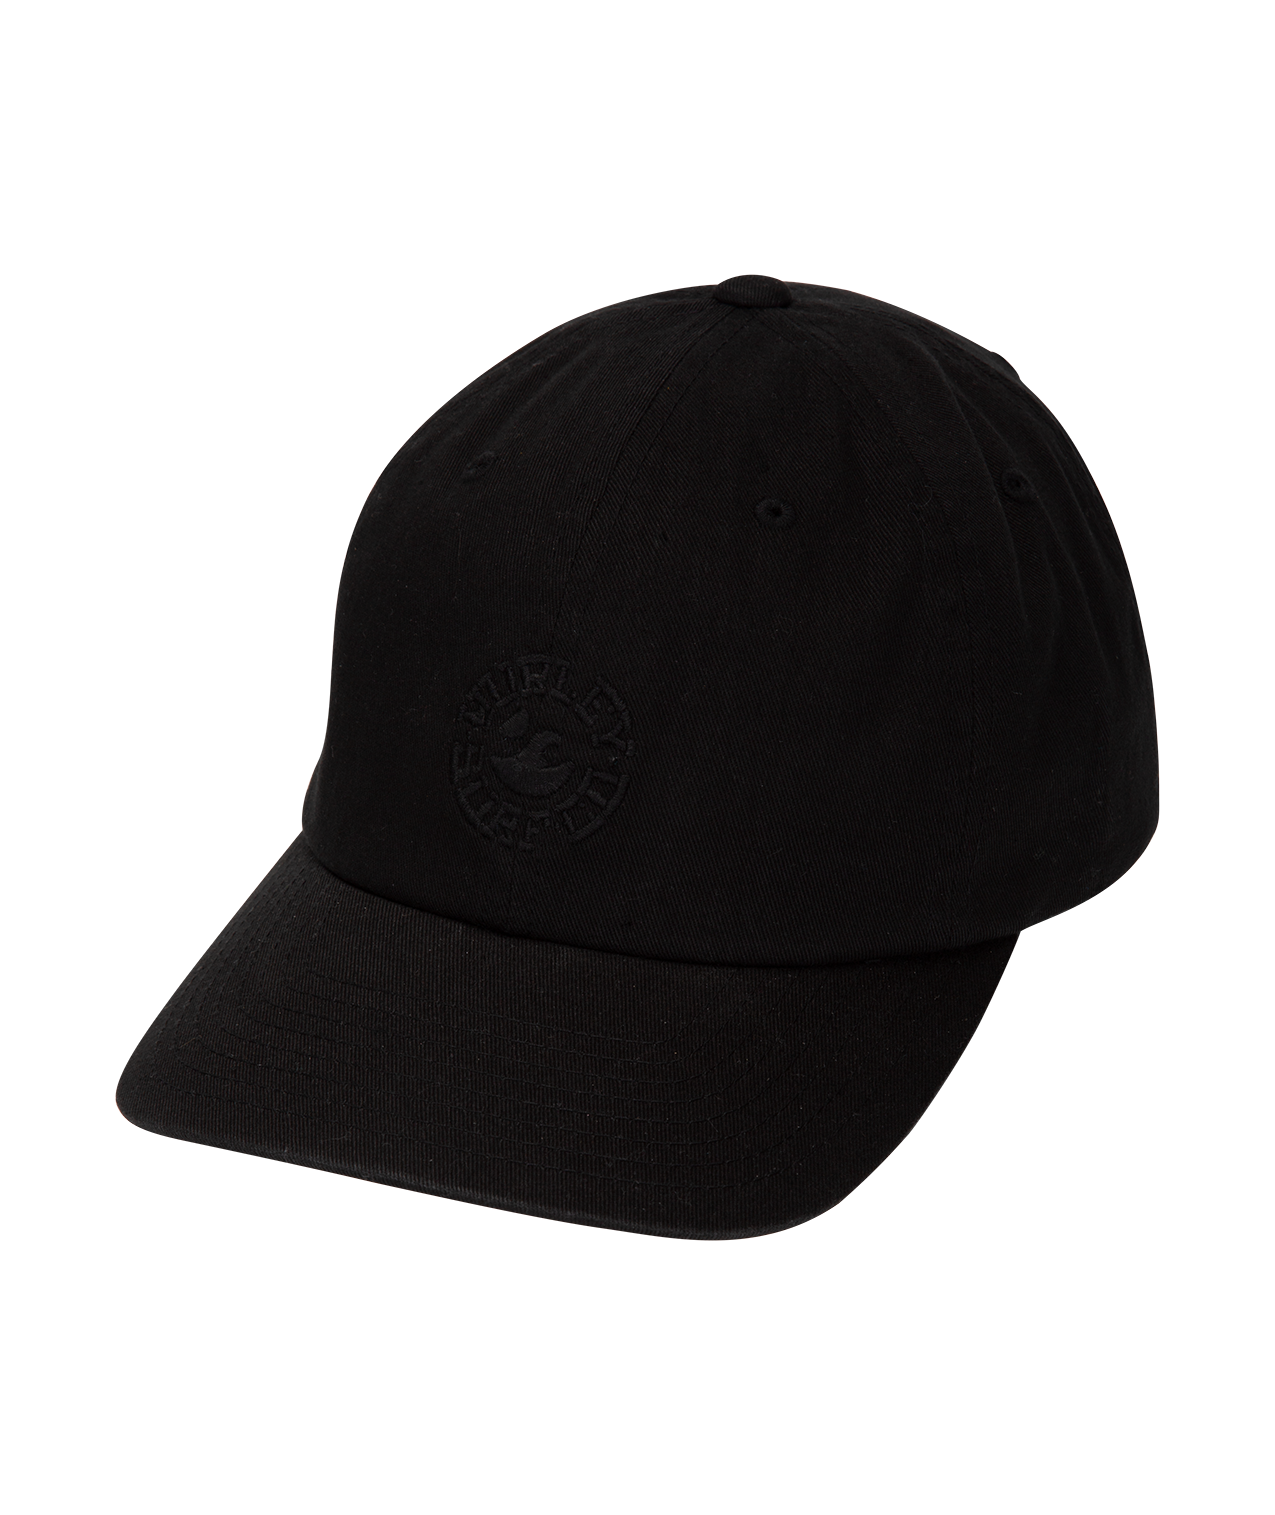 HURLEY M GOOD TIMES HAT 010 AV4357